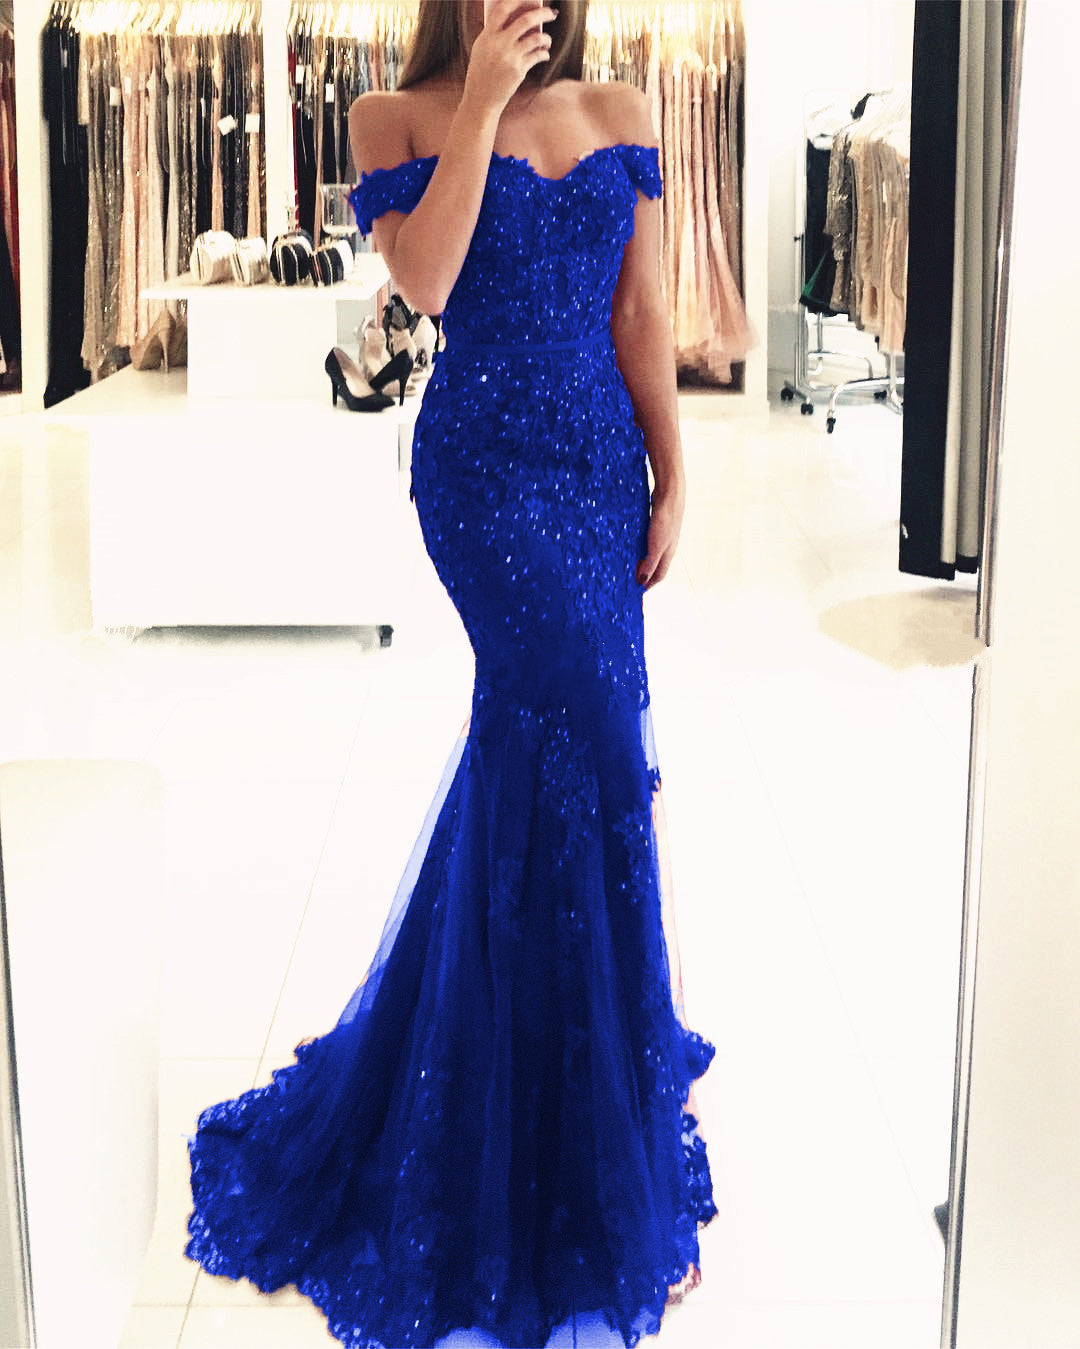 fe132d2201c ... Royal Blue Prom Dresses 2019  Emerald Green Prom Dresses  Dark Green  Prom Dresses  Elegant Pearl Beaded Lace Mermaid Evening ...